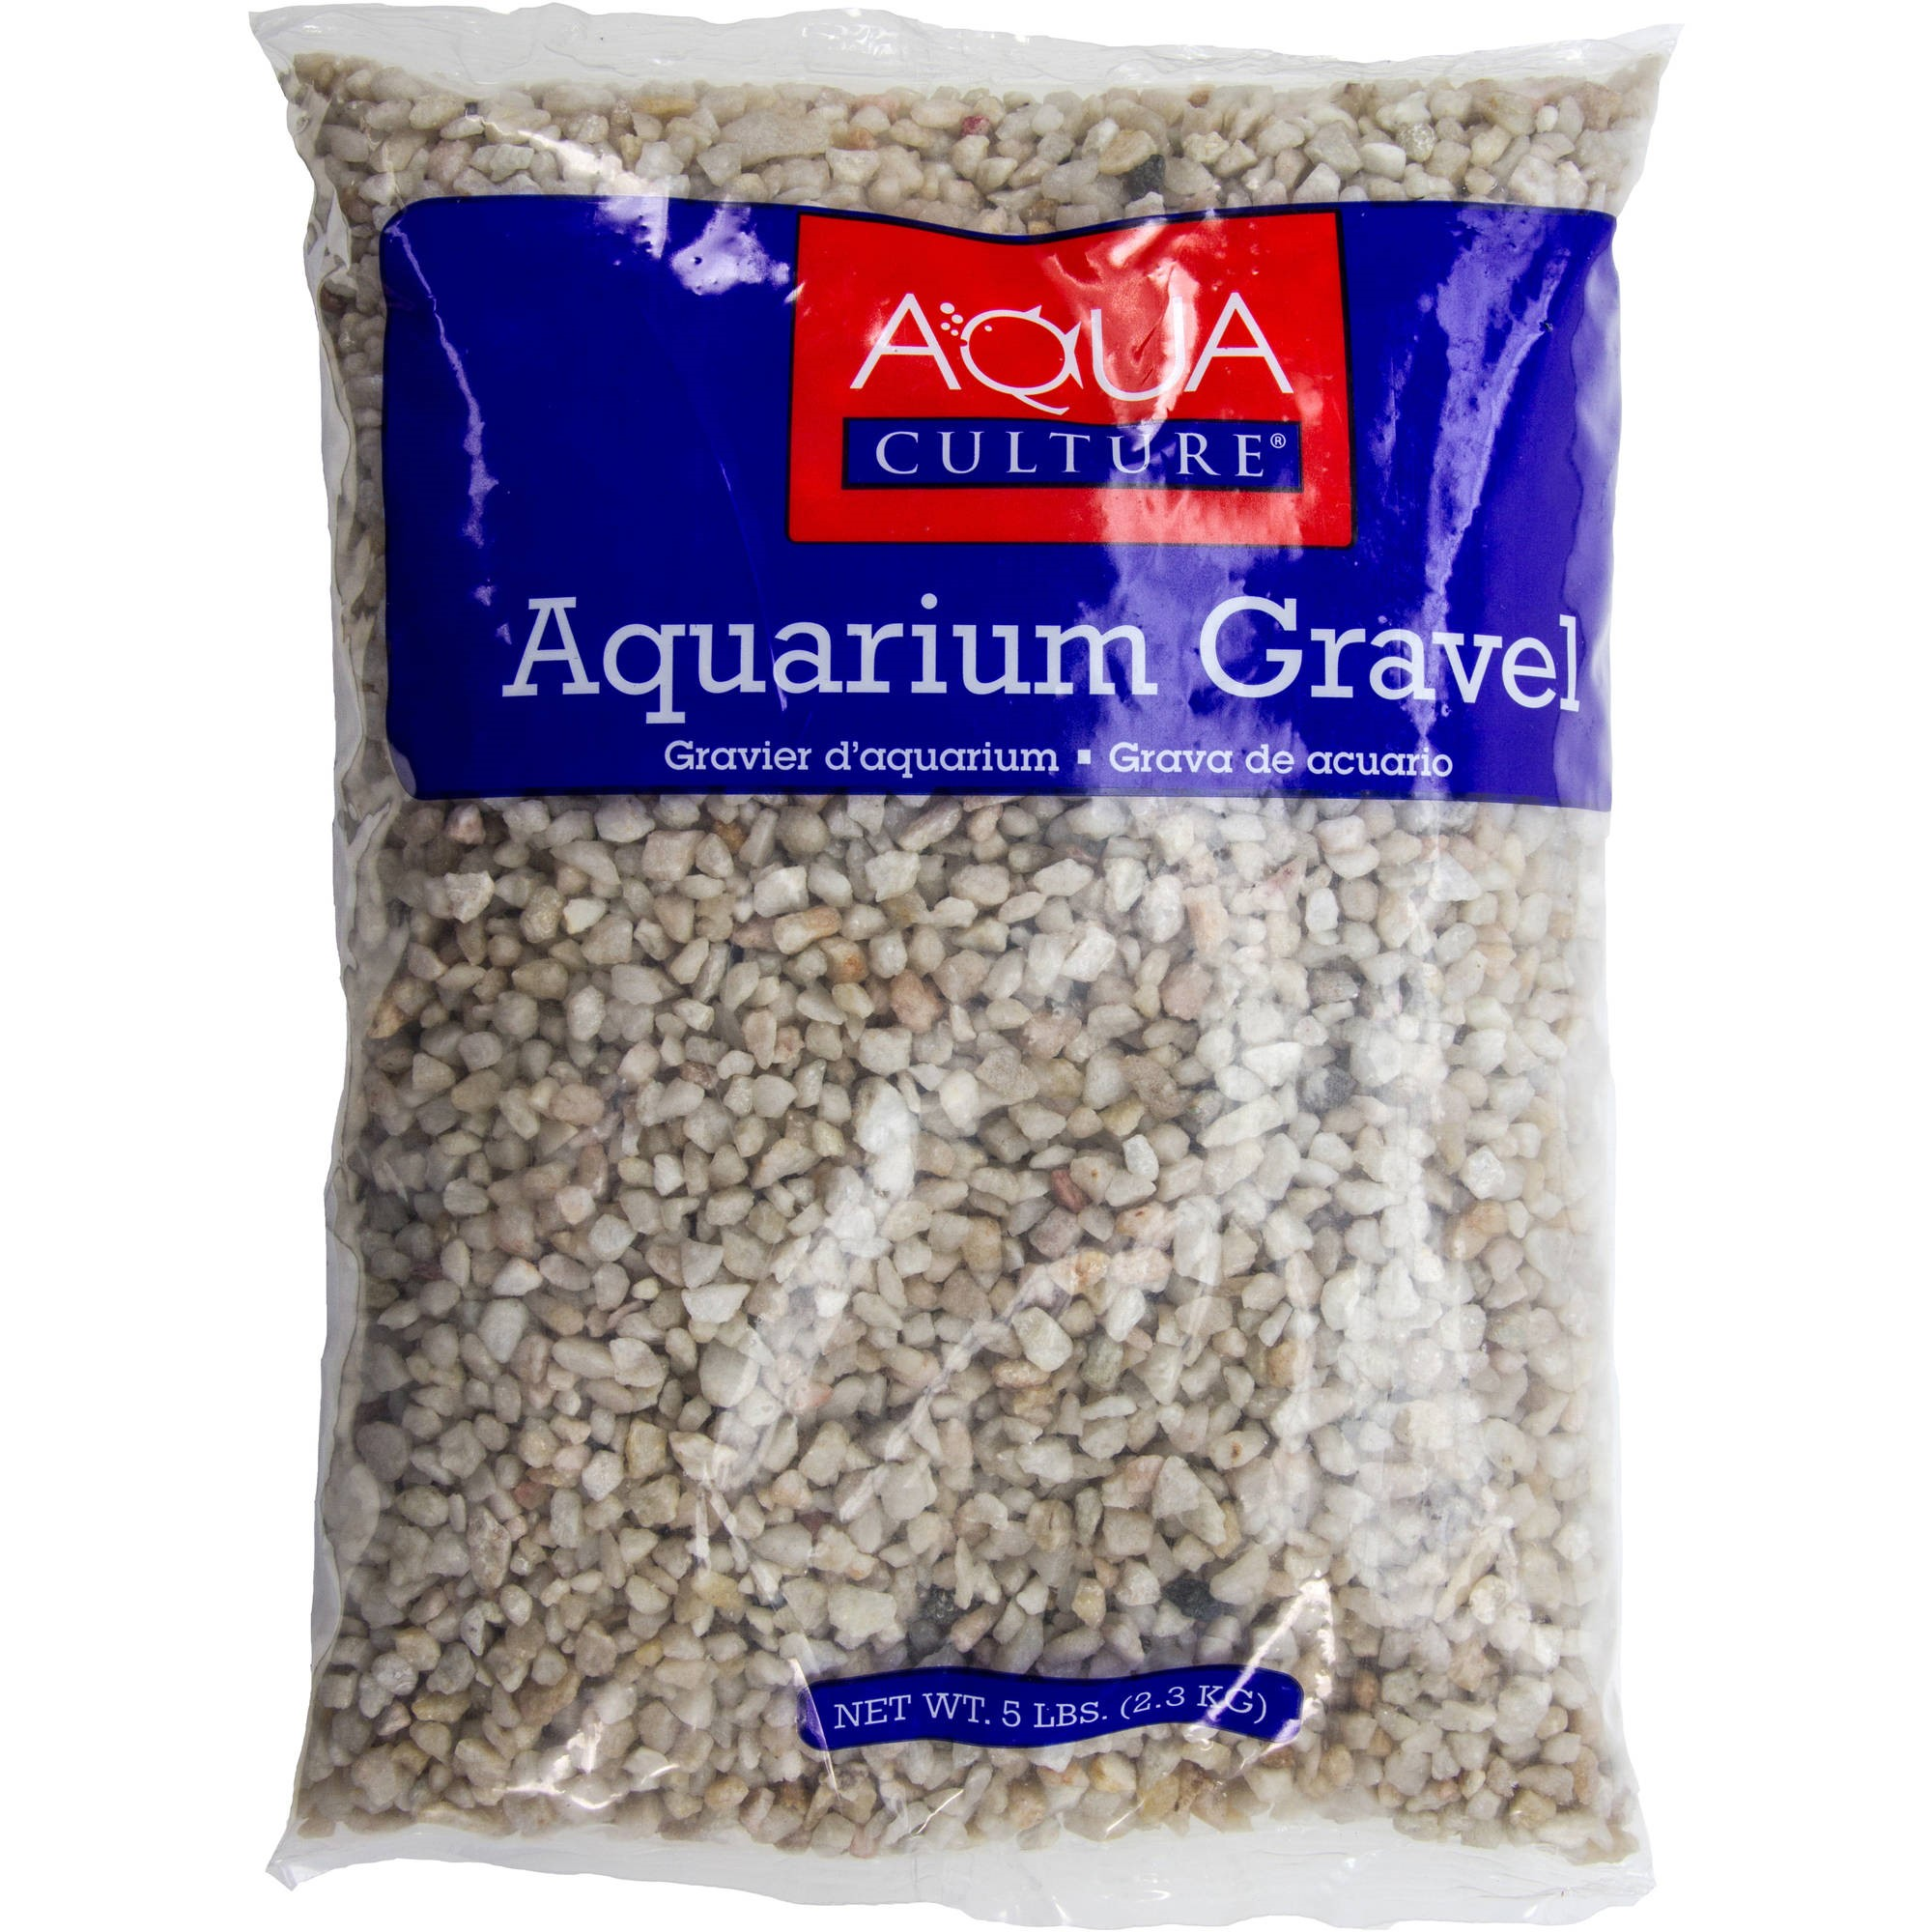 Aqua Culture Aquarium Gravel, Ocean Beach, 5-Pound